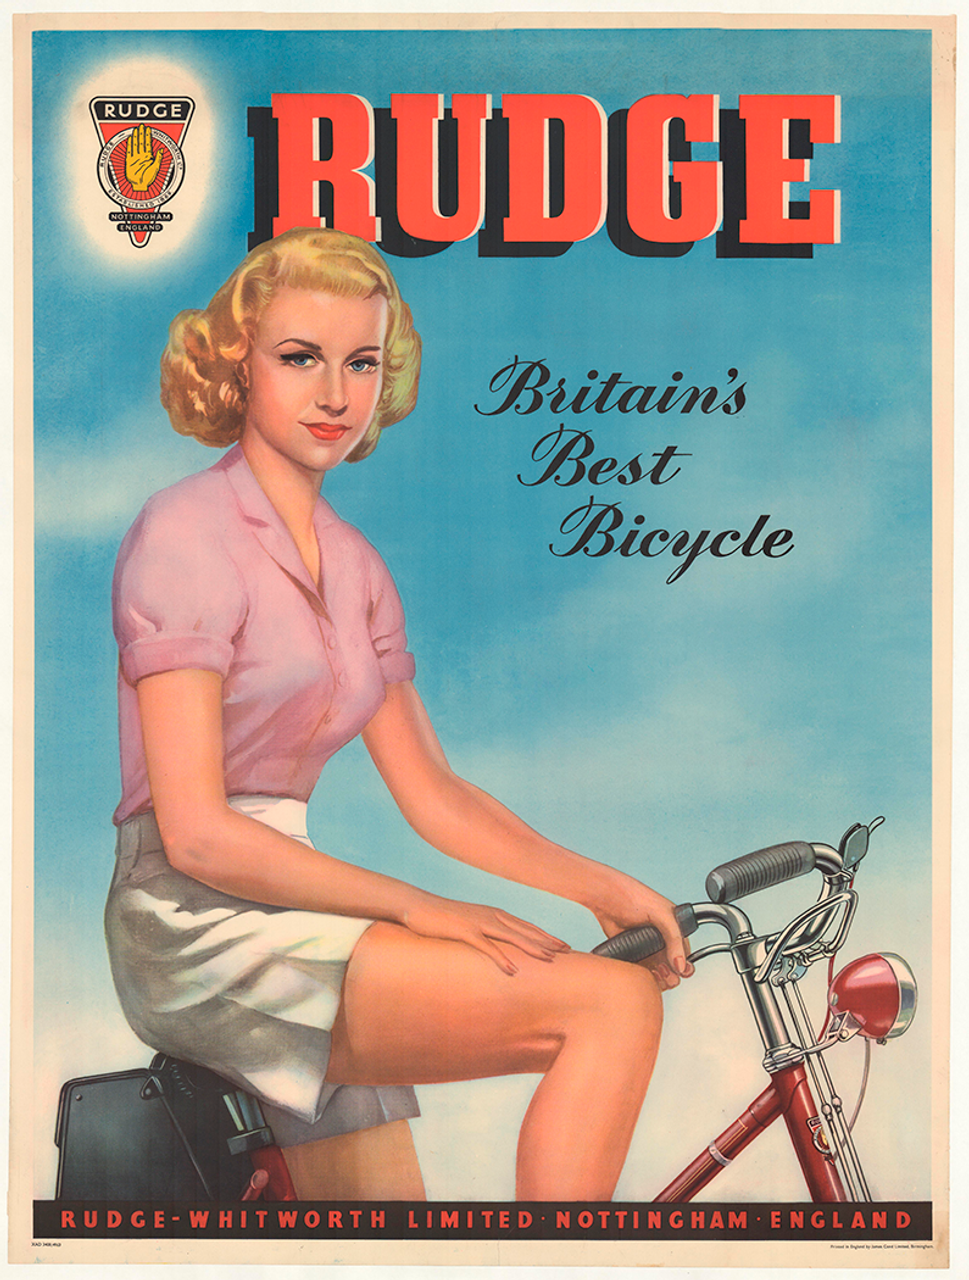 Rudge Pin-up Original Vintage Bicycle Poster